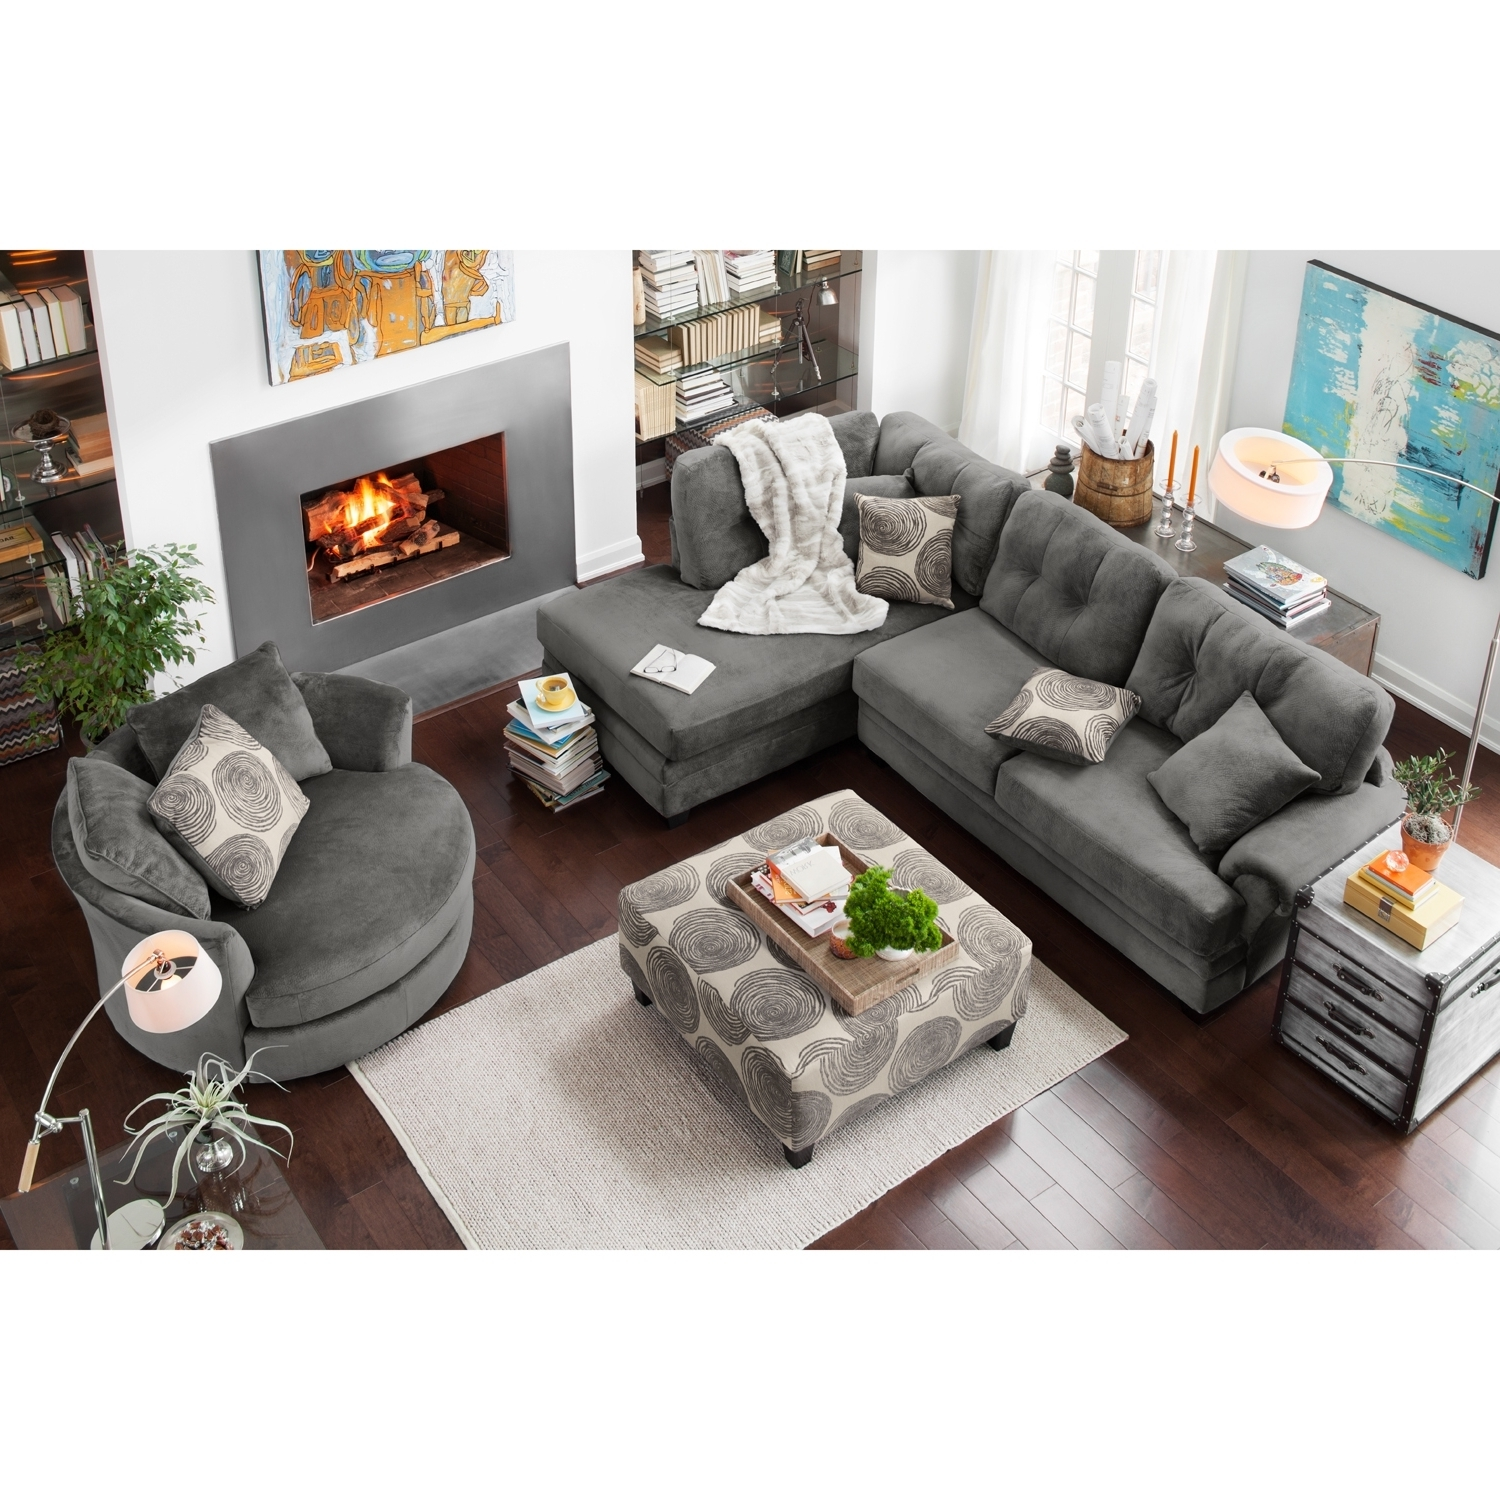 Fashionable Furniture: Mesmerizing Costco Sectionals Sofa For Cozy Living Room Inside Grey Sectionals With Chaise (View 4 of 15)